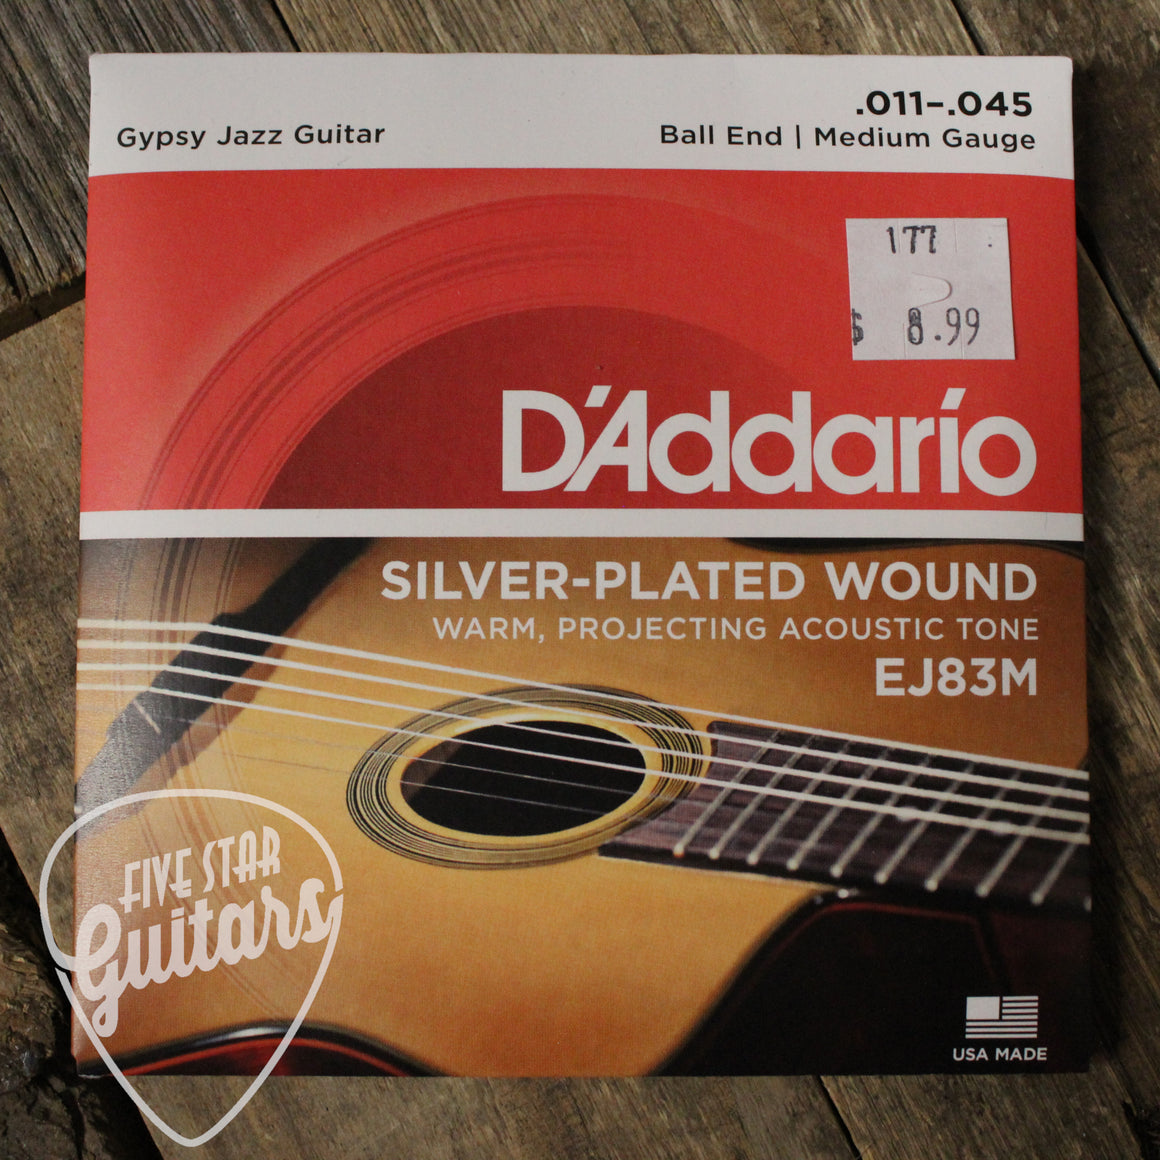 D'Addario EJ83M Gypsy Jazz, Ball End, Medium, 11-45